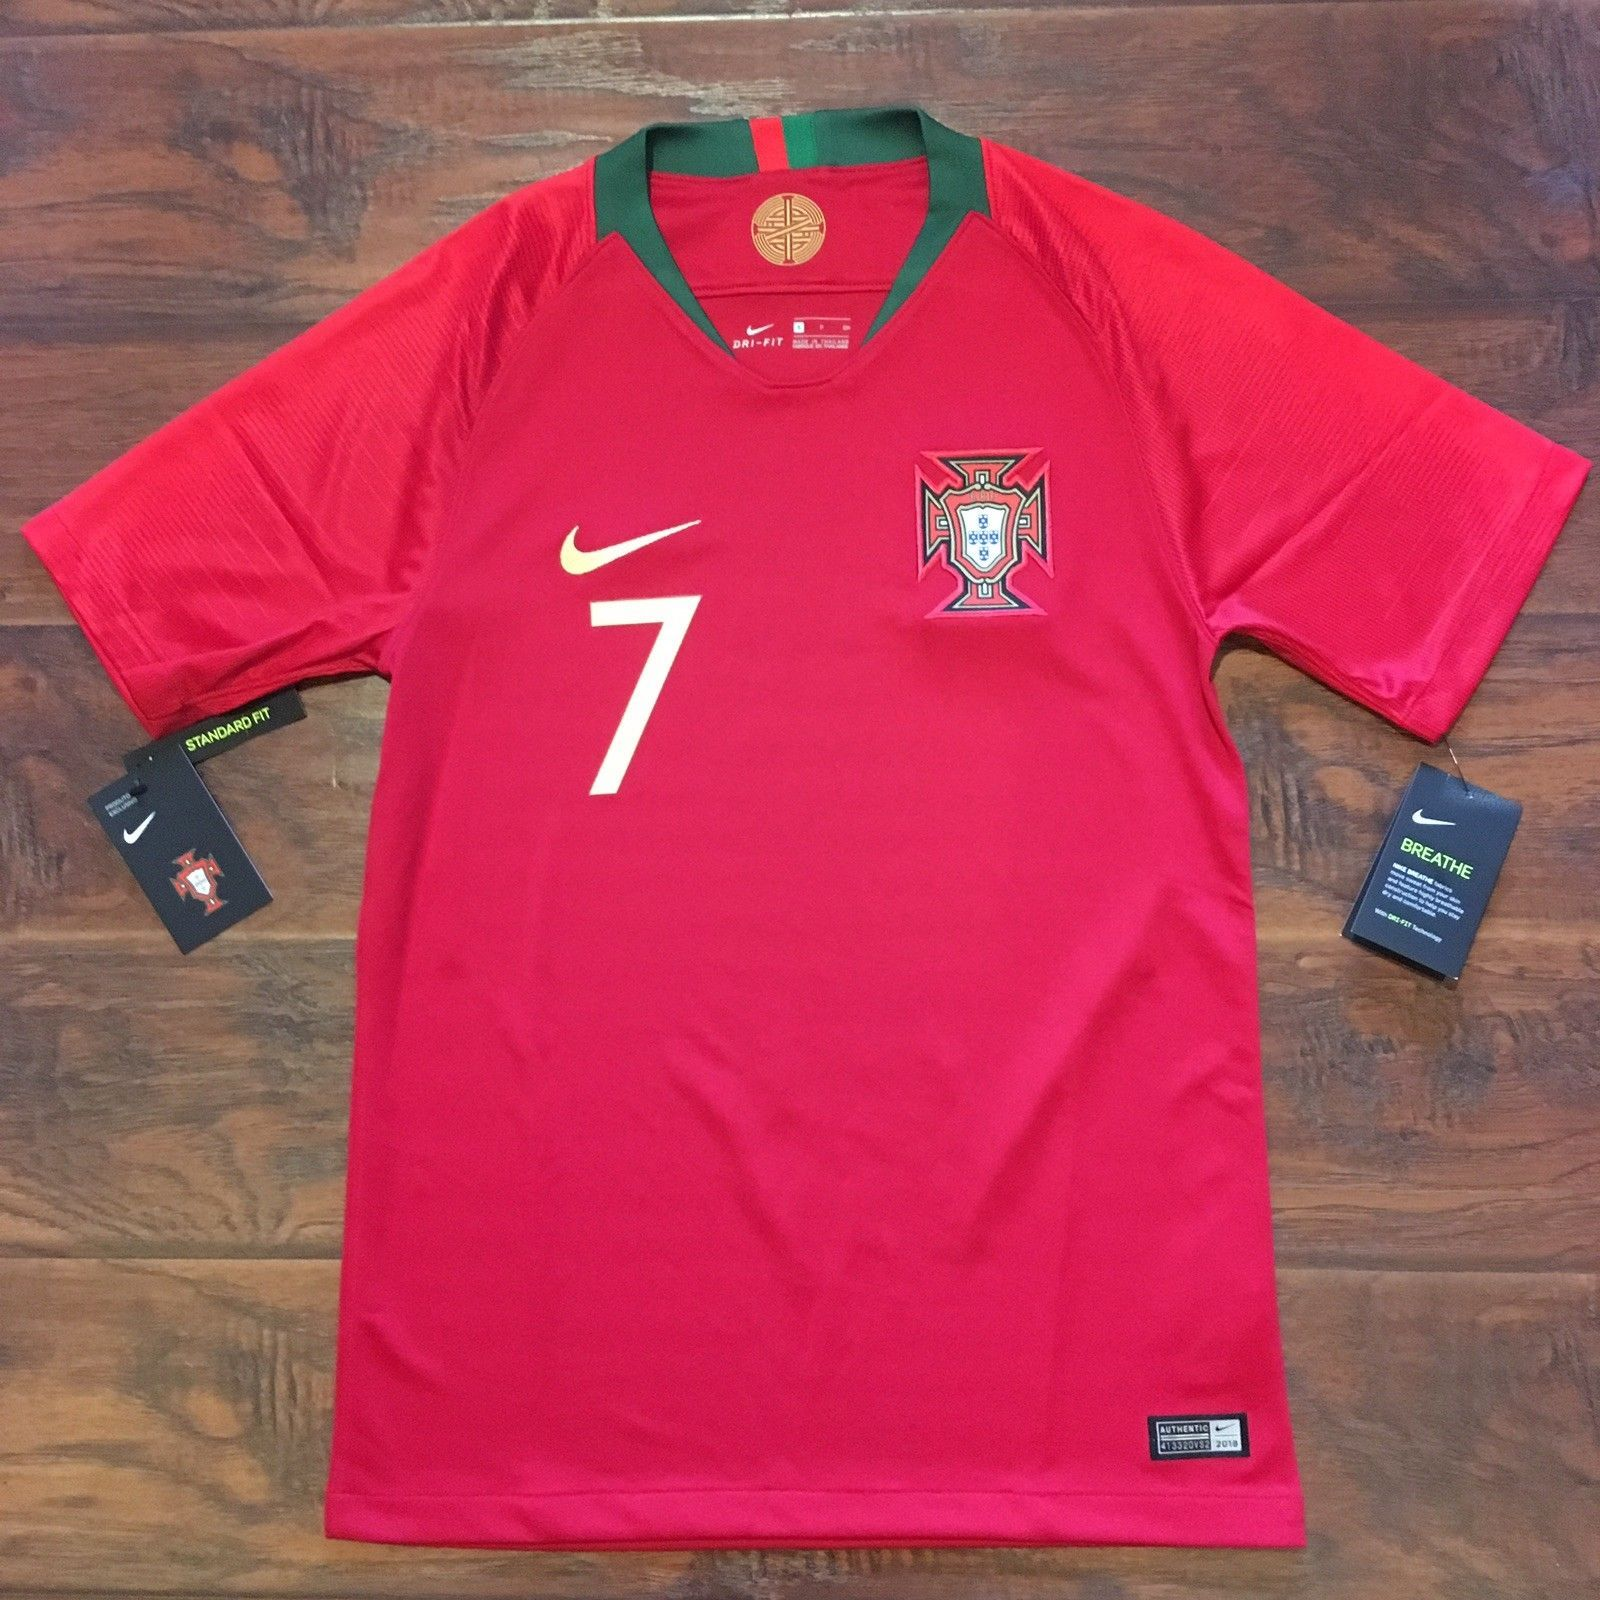 size 40 4c878 67d44 2018 Portugal Home Jersey #7 Ronaldo Small Nike Soccer World ...